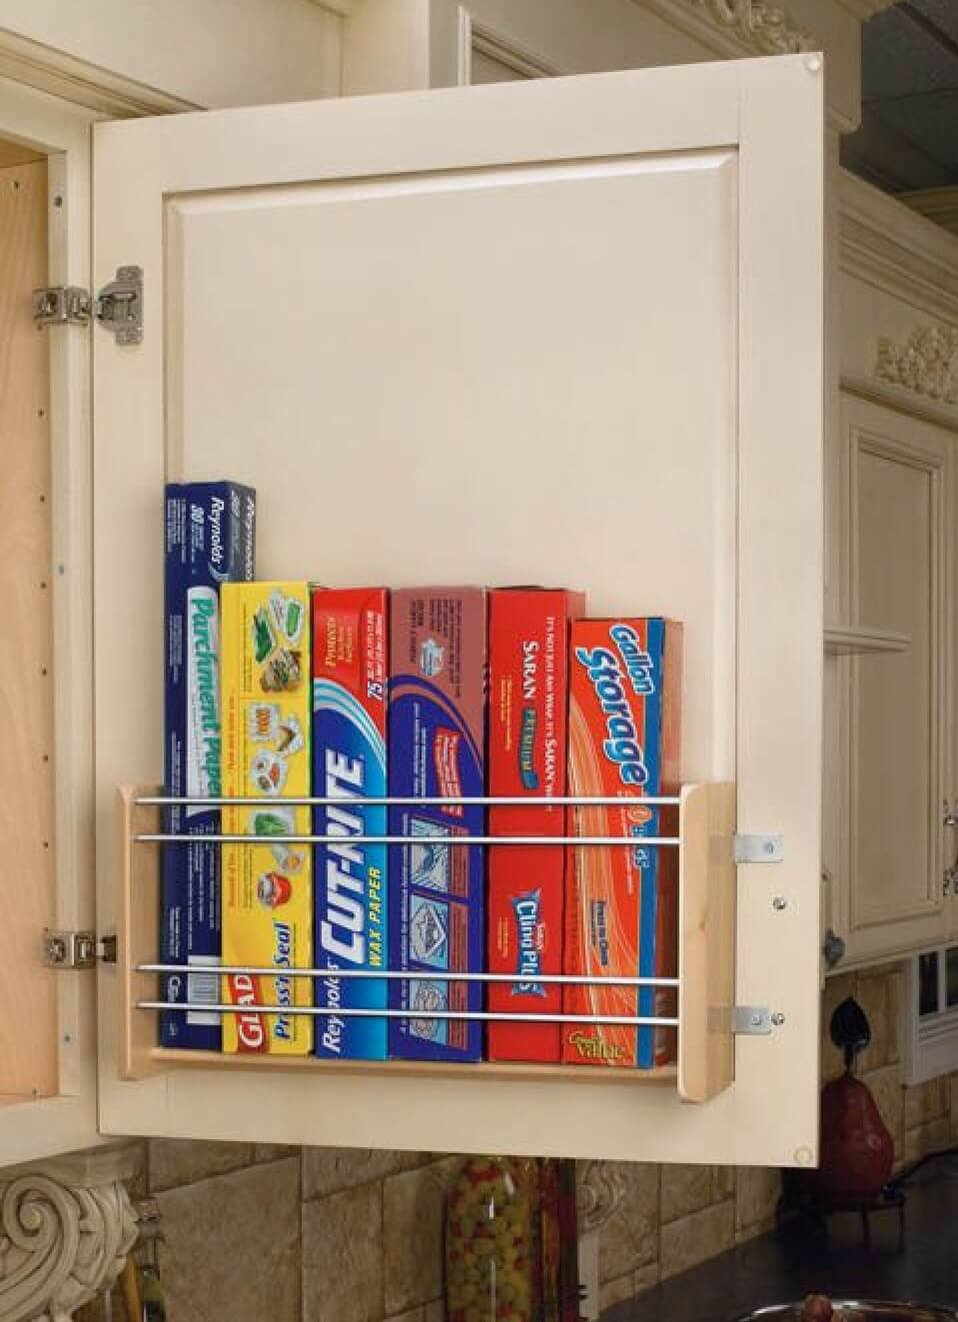 1. Door Attachment For Food Storage Necessities